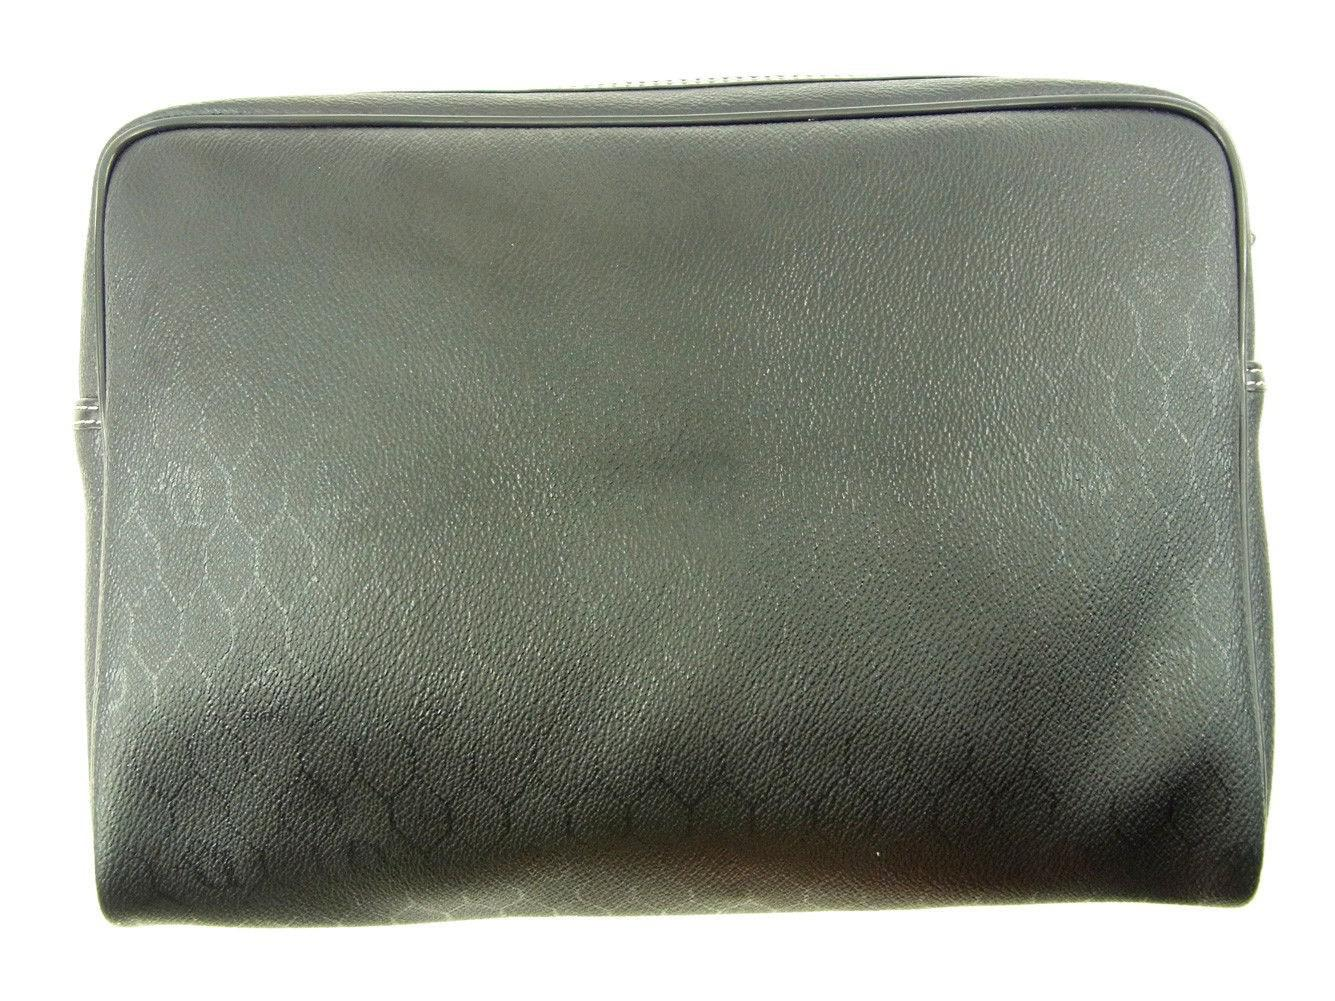 Lyst - Dior Clutch Bag Old Women  s Men  s Used T3745 in Black fef346c7dde5c